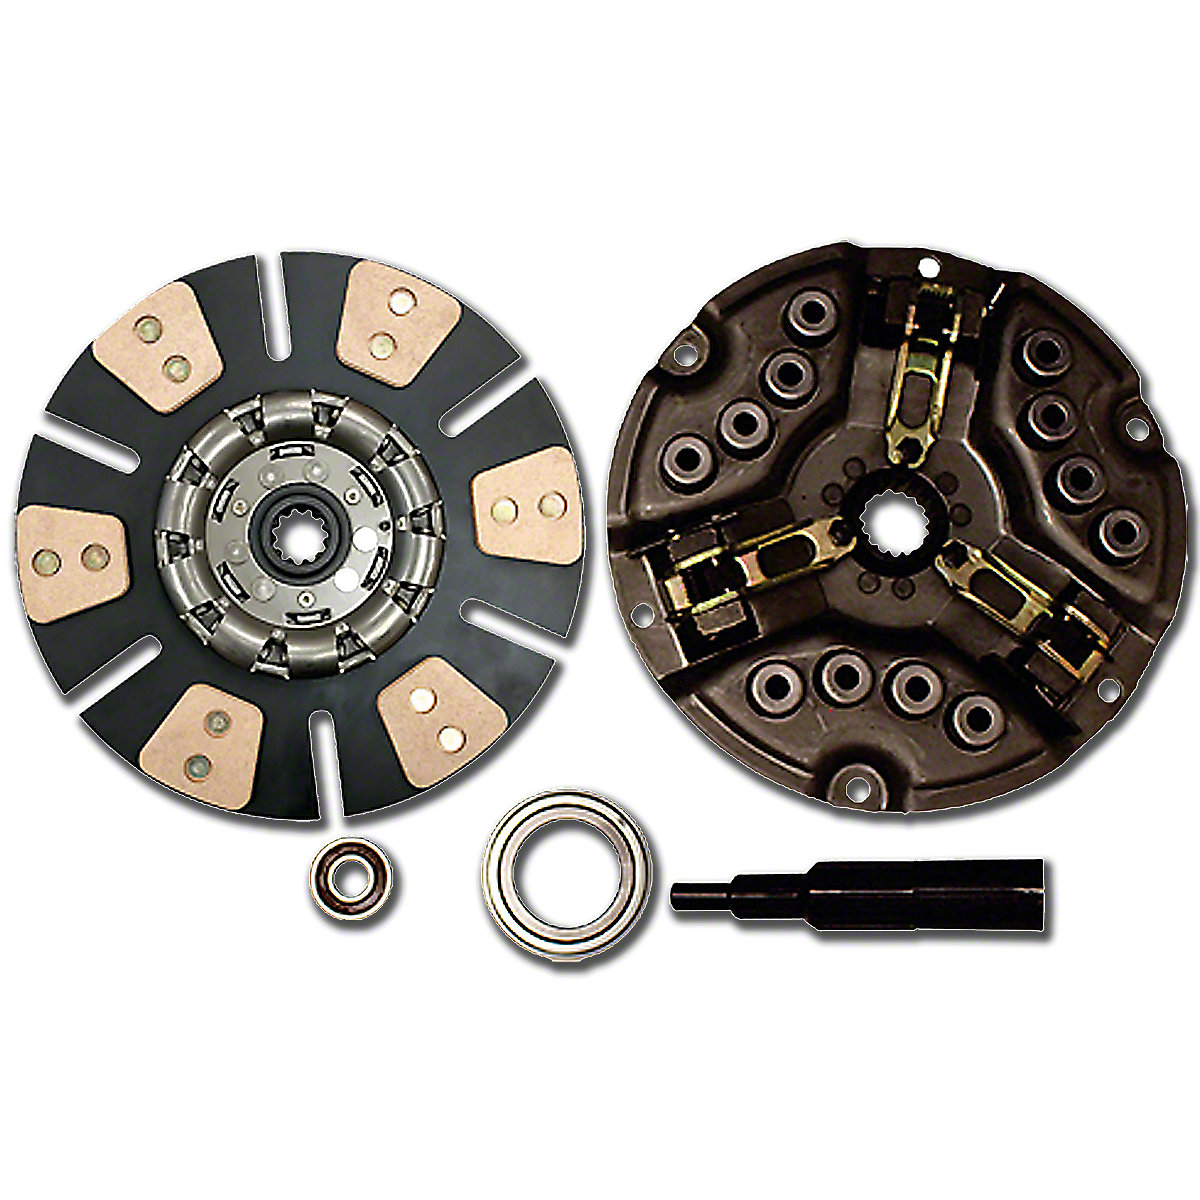 IHS2496 Clutch Kit (New not rebuilt)